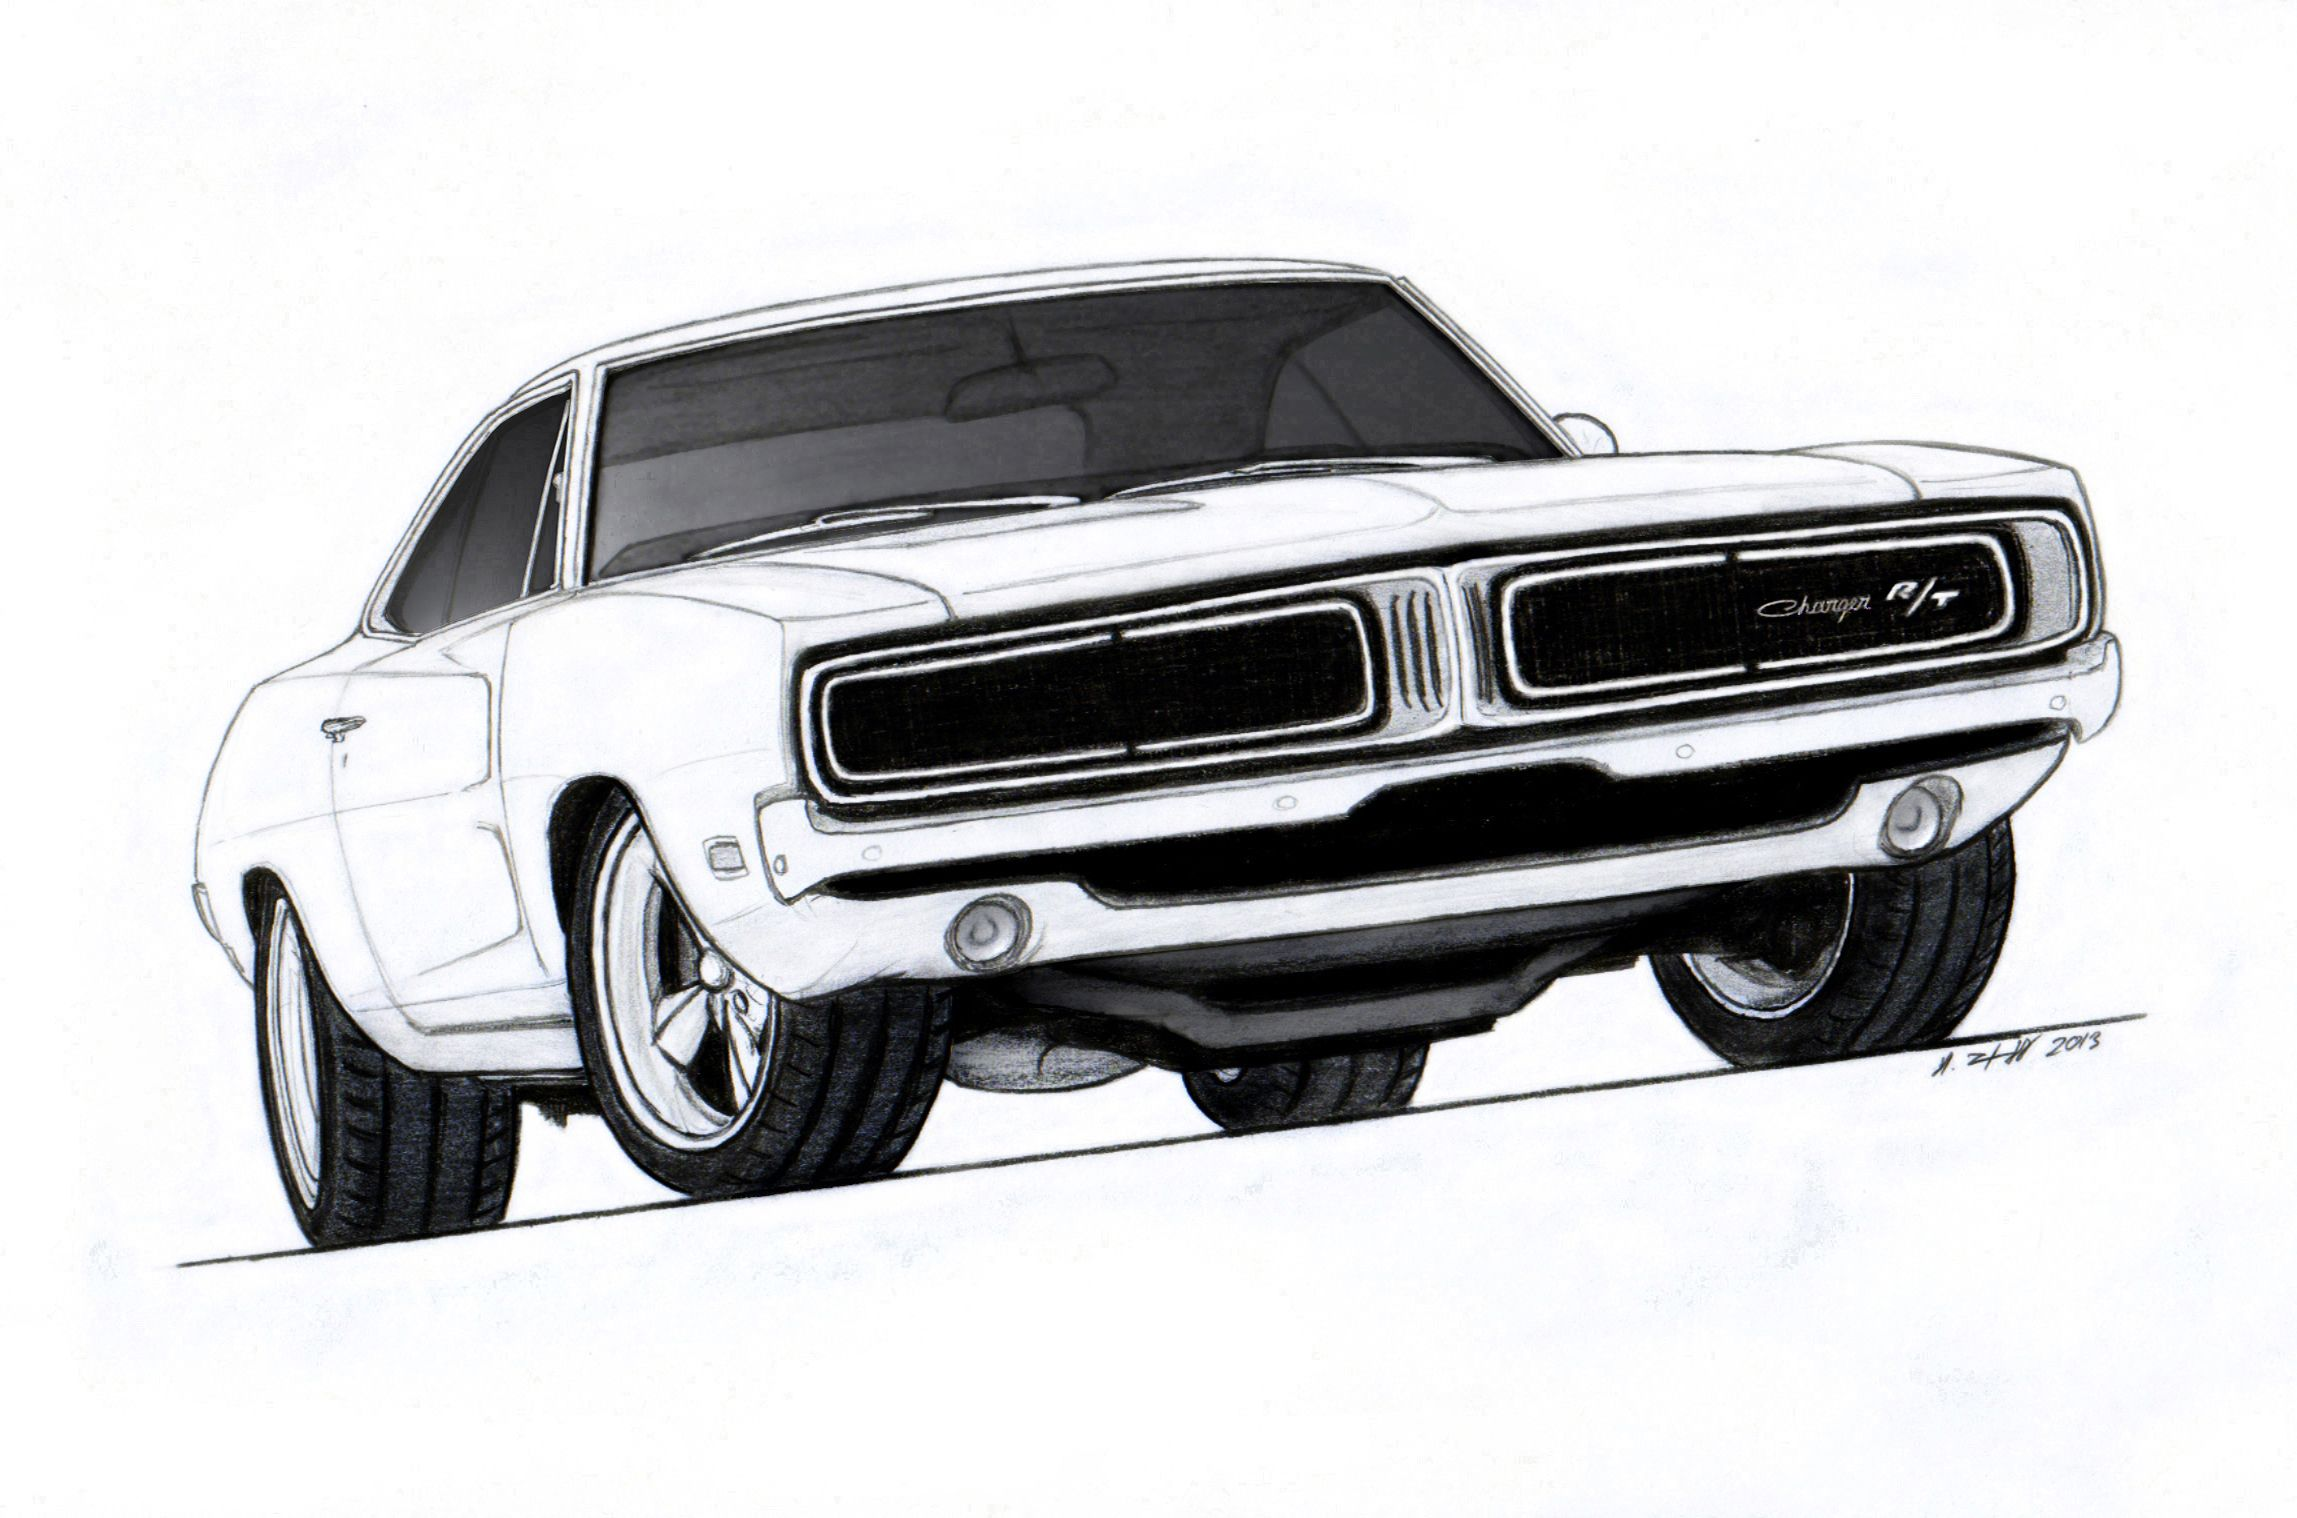 1969 dodge charger r t pro touring drawing by on deviantart cars. Black Bedroom Furniture Sets. Home Design Ideas